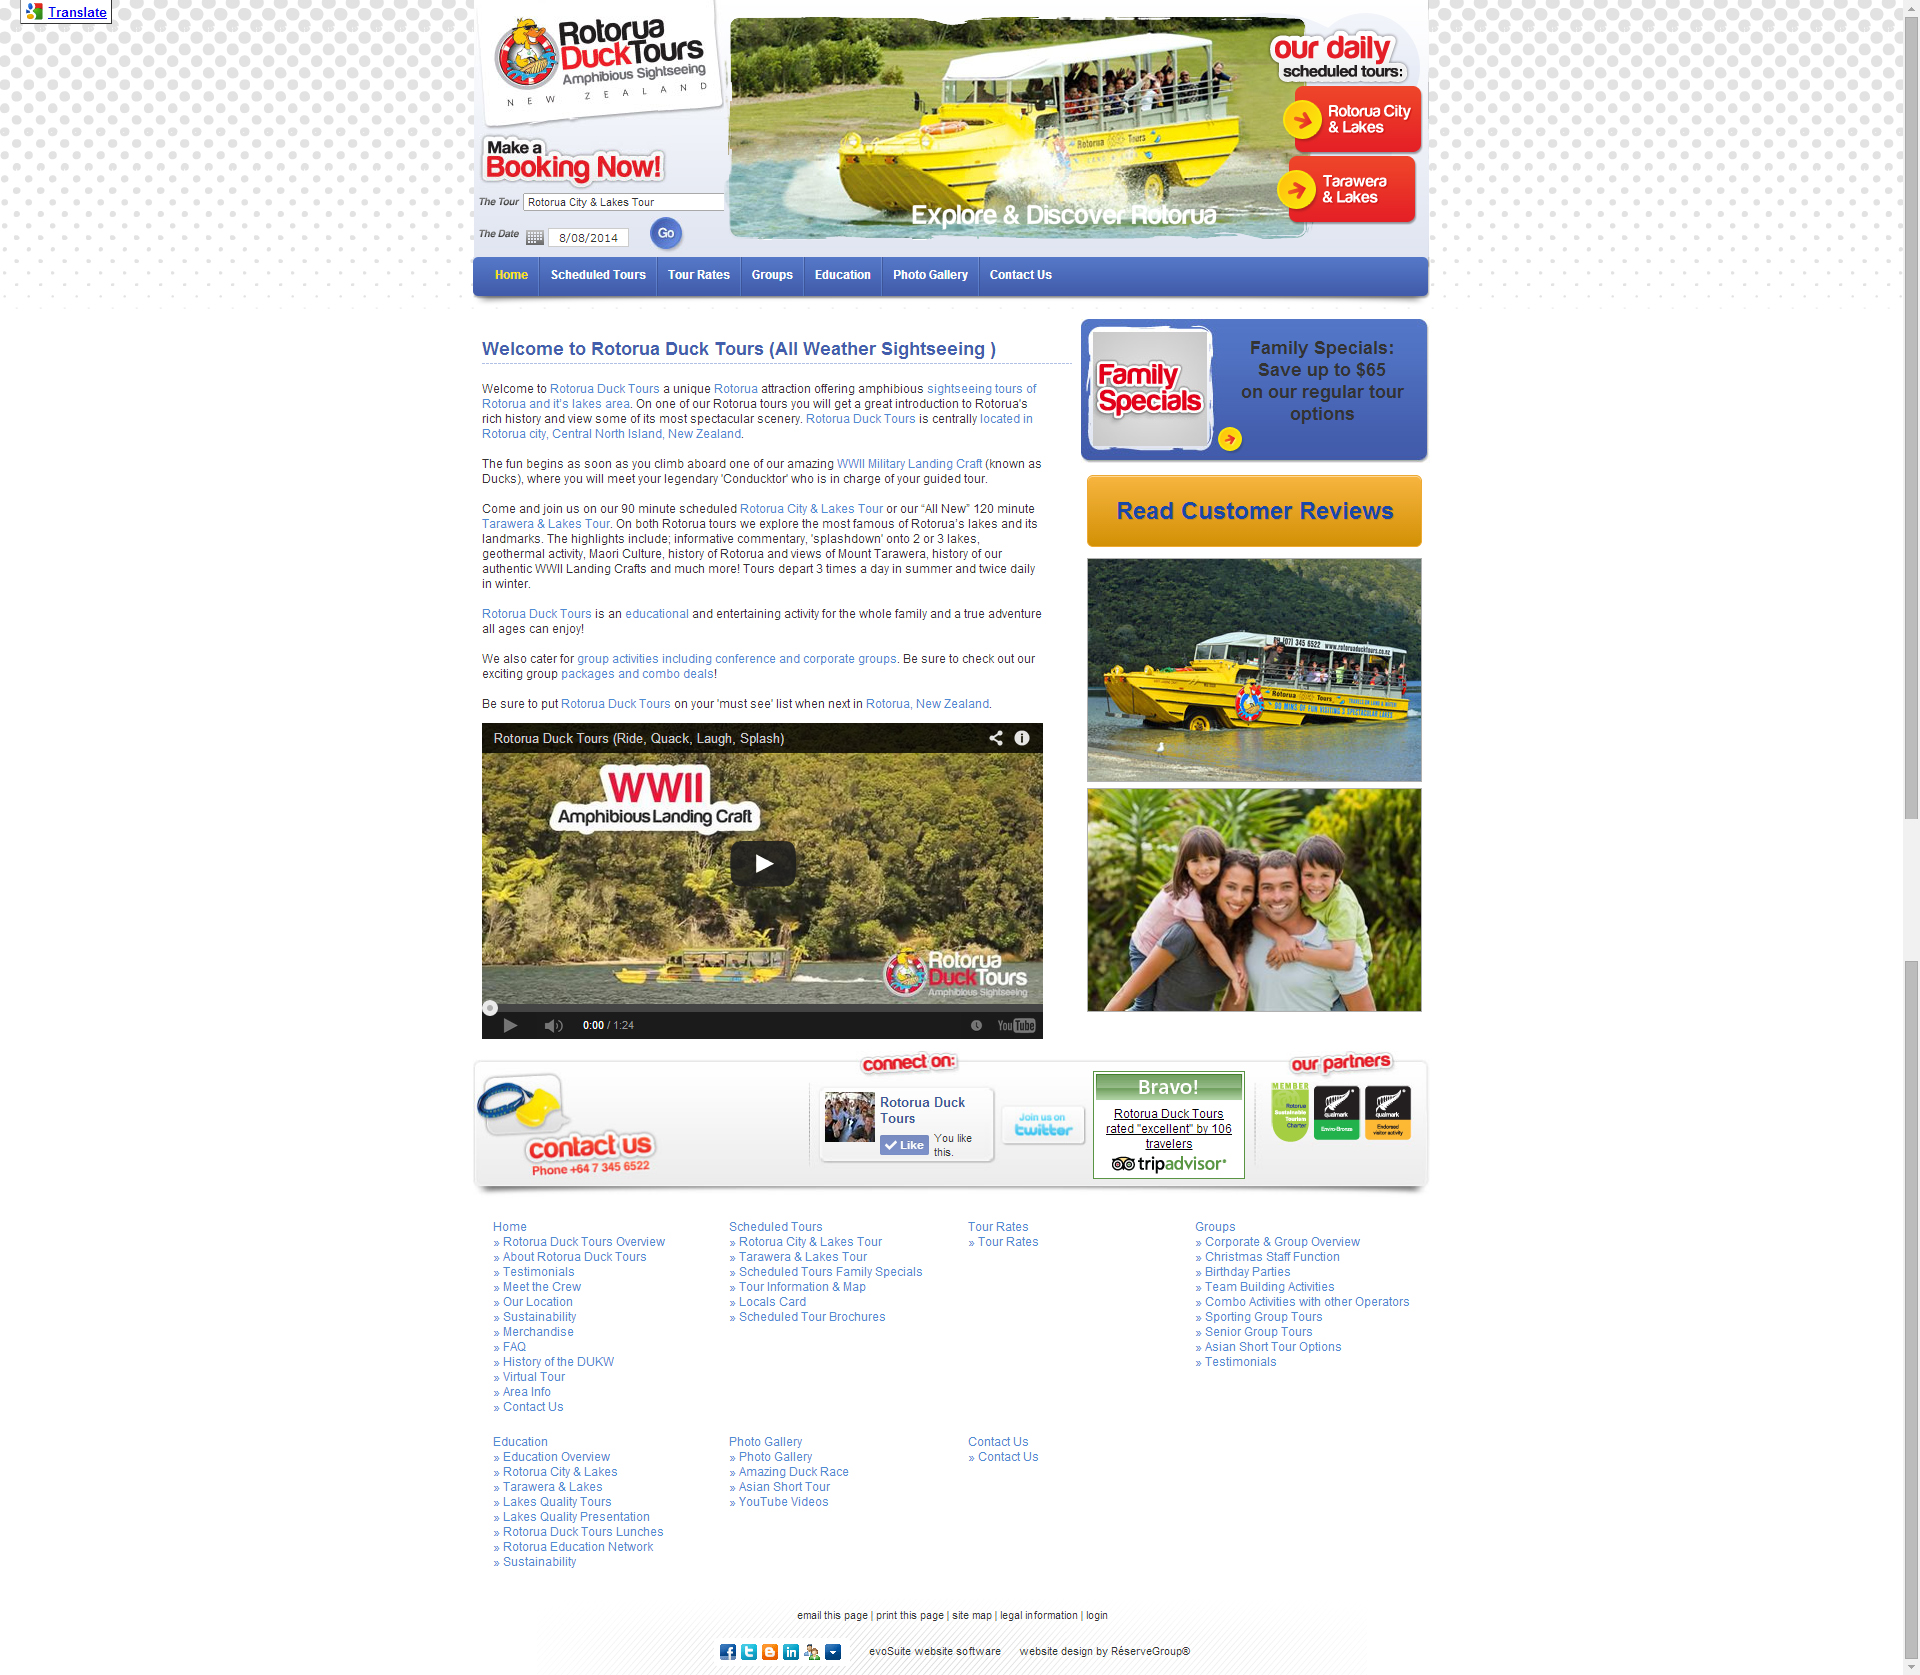 Rotorua Duck Tours: Previous website